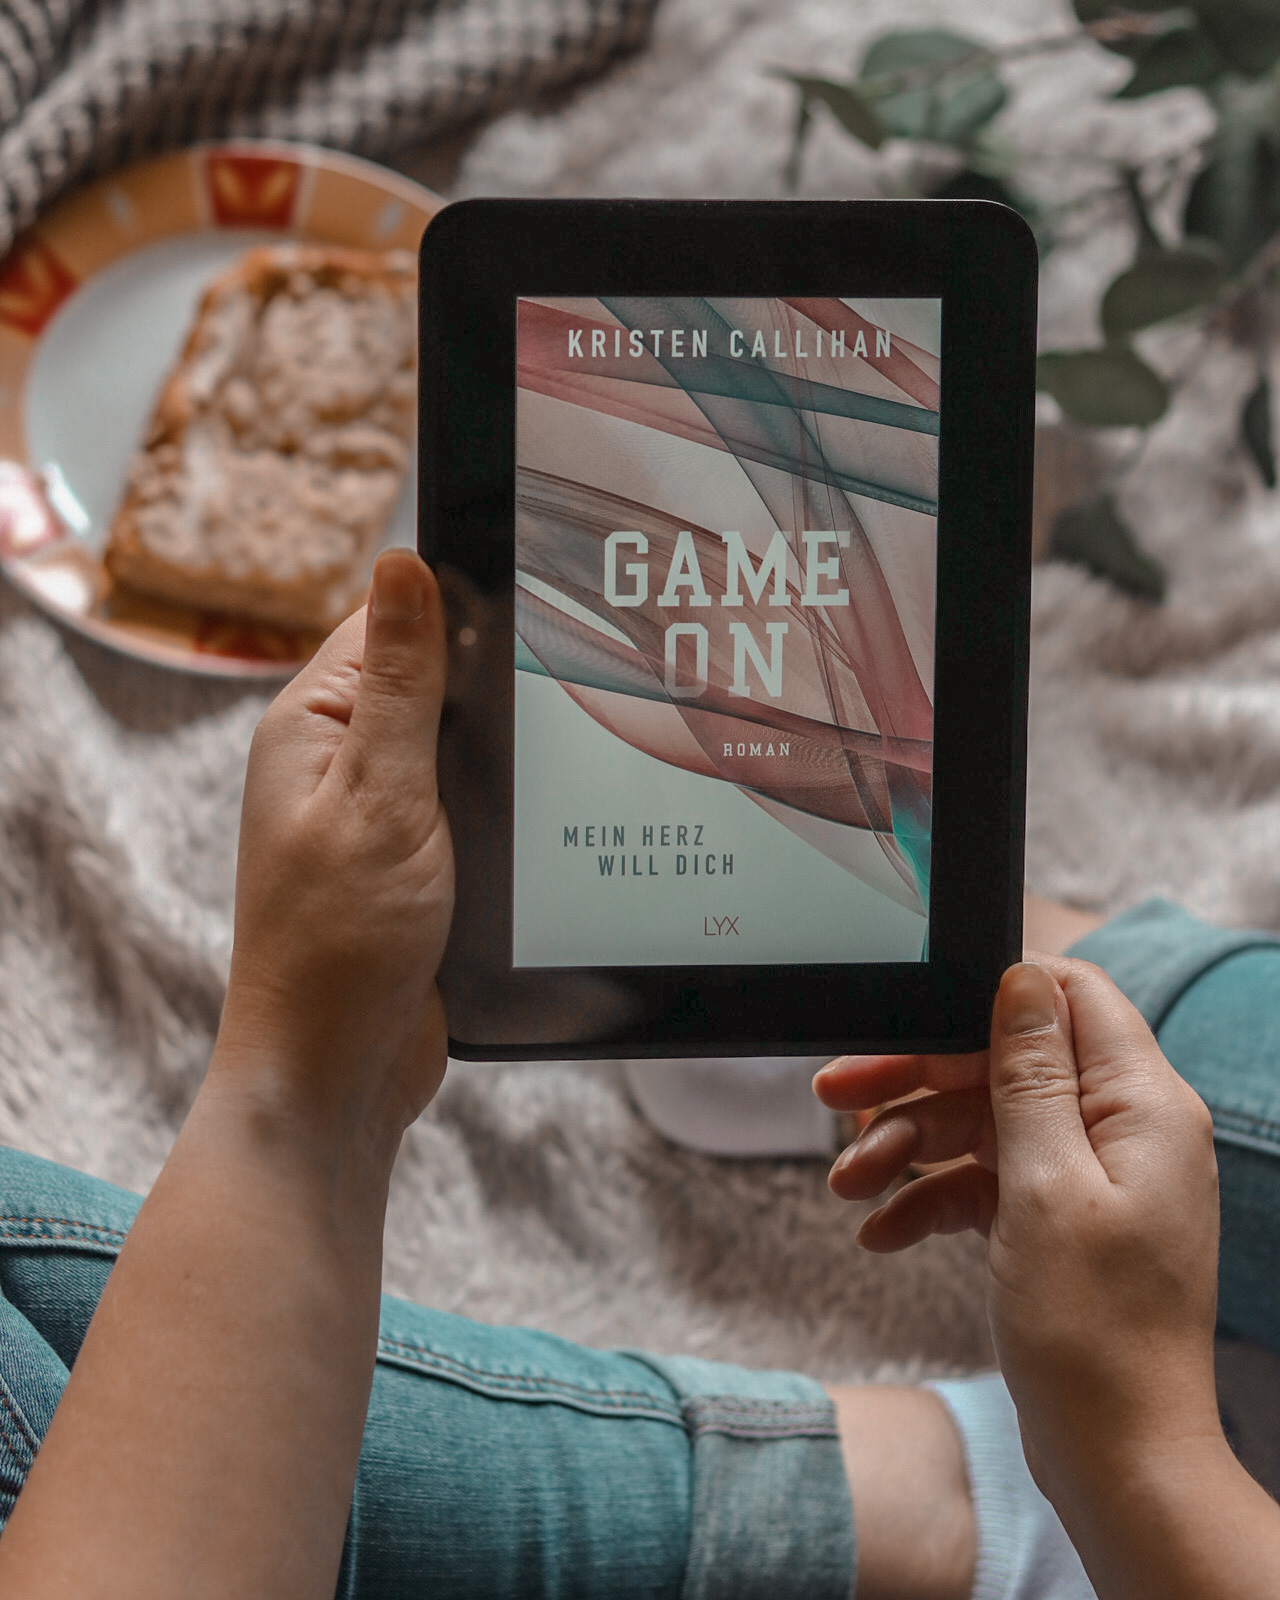 Mein Herz will dich – Game On #1 | Kristen Callihan